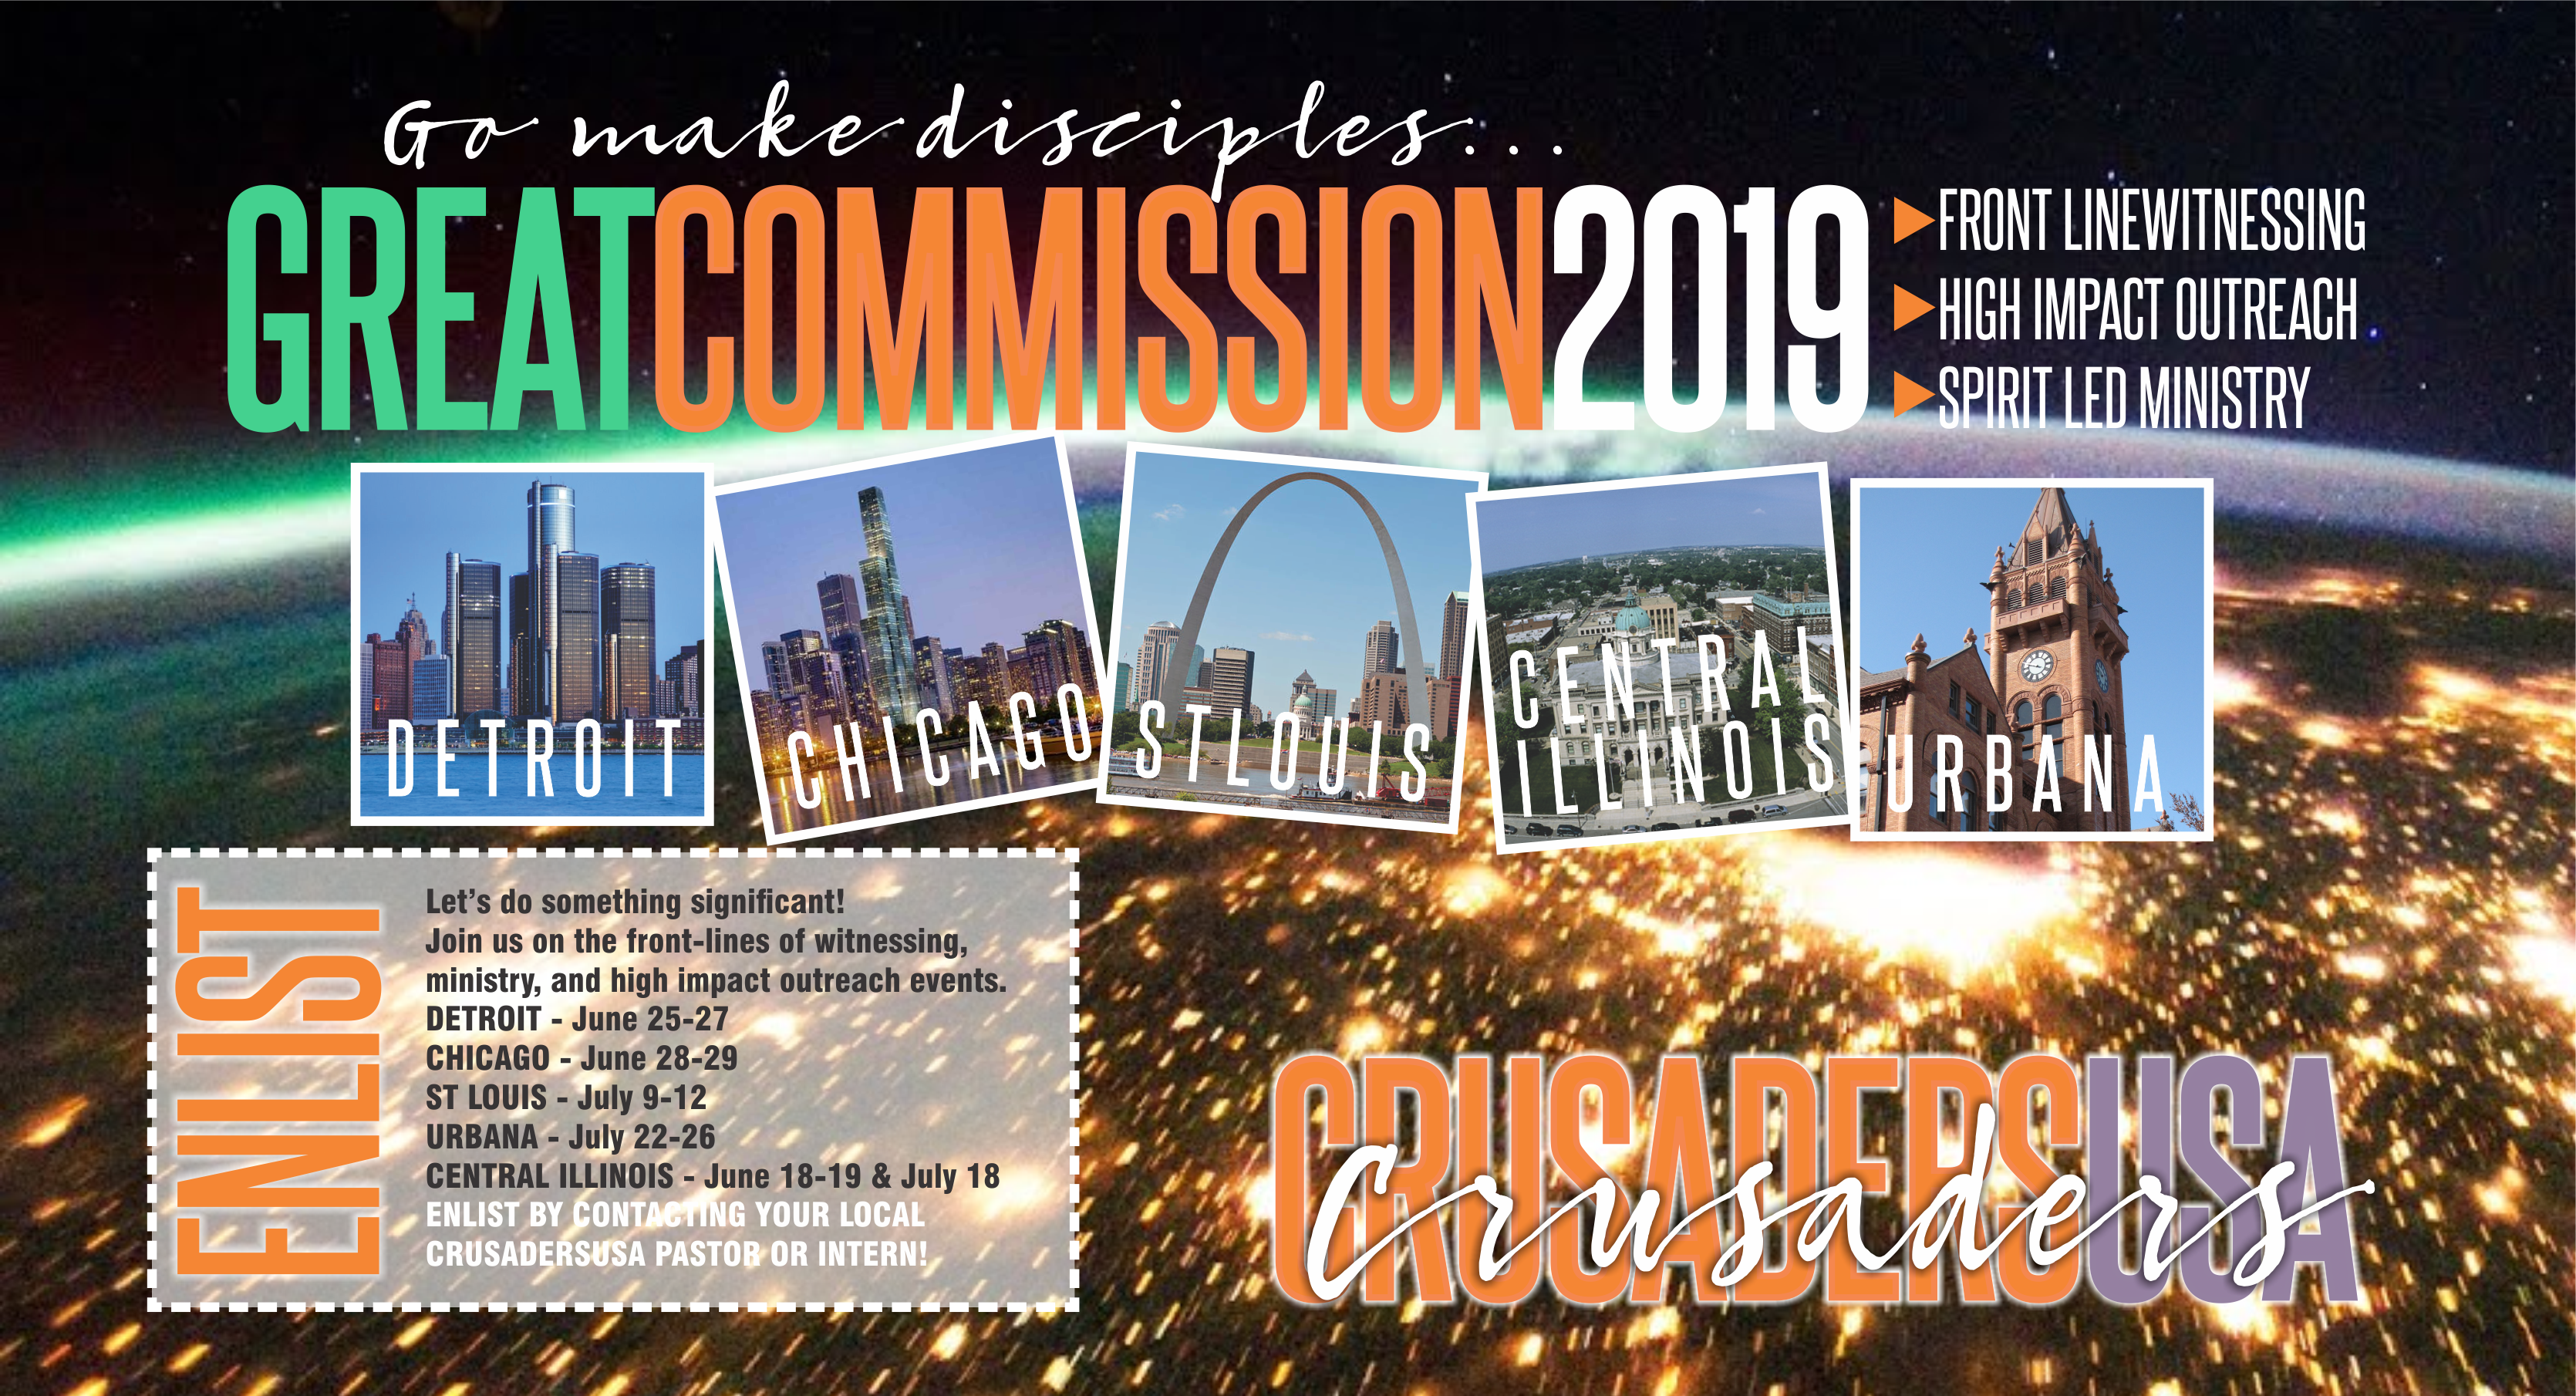 Great Commission 2019Welcome to Faith Community